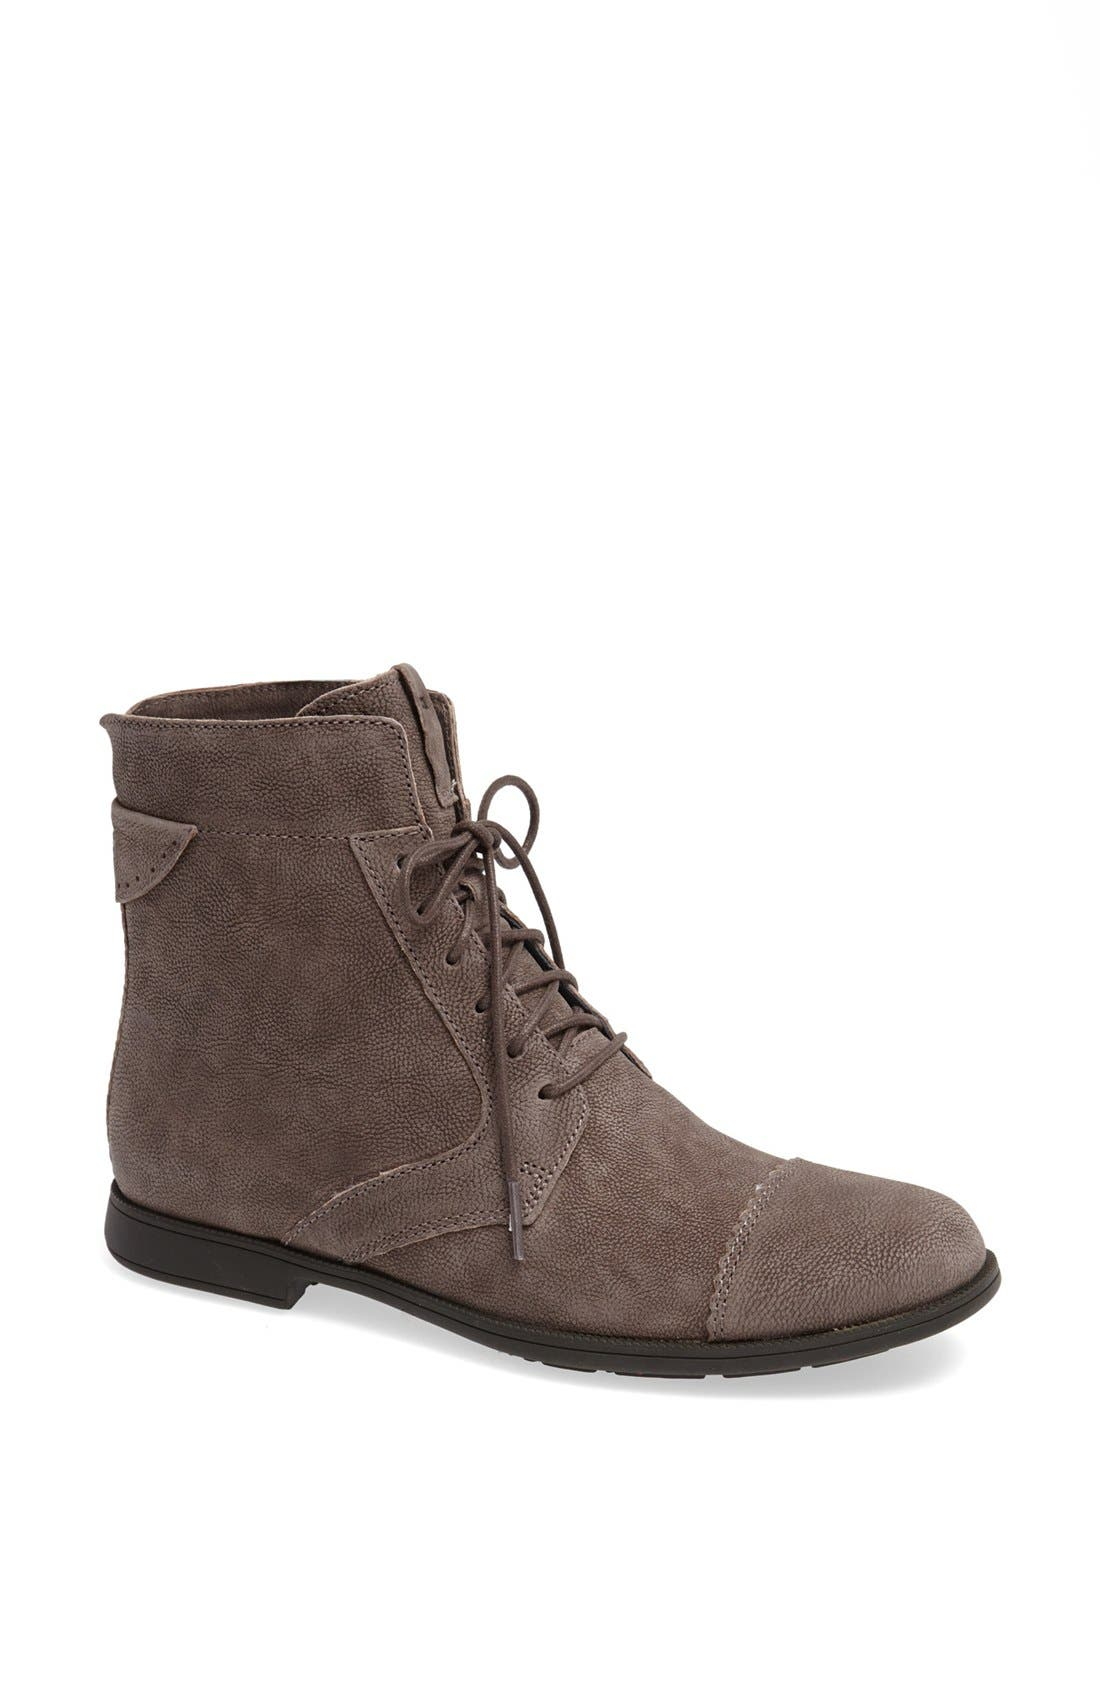 Main Image - Camper '1913' Leather Ankle Bootie